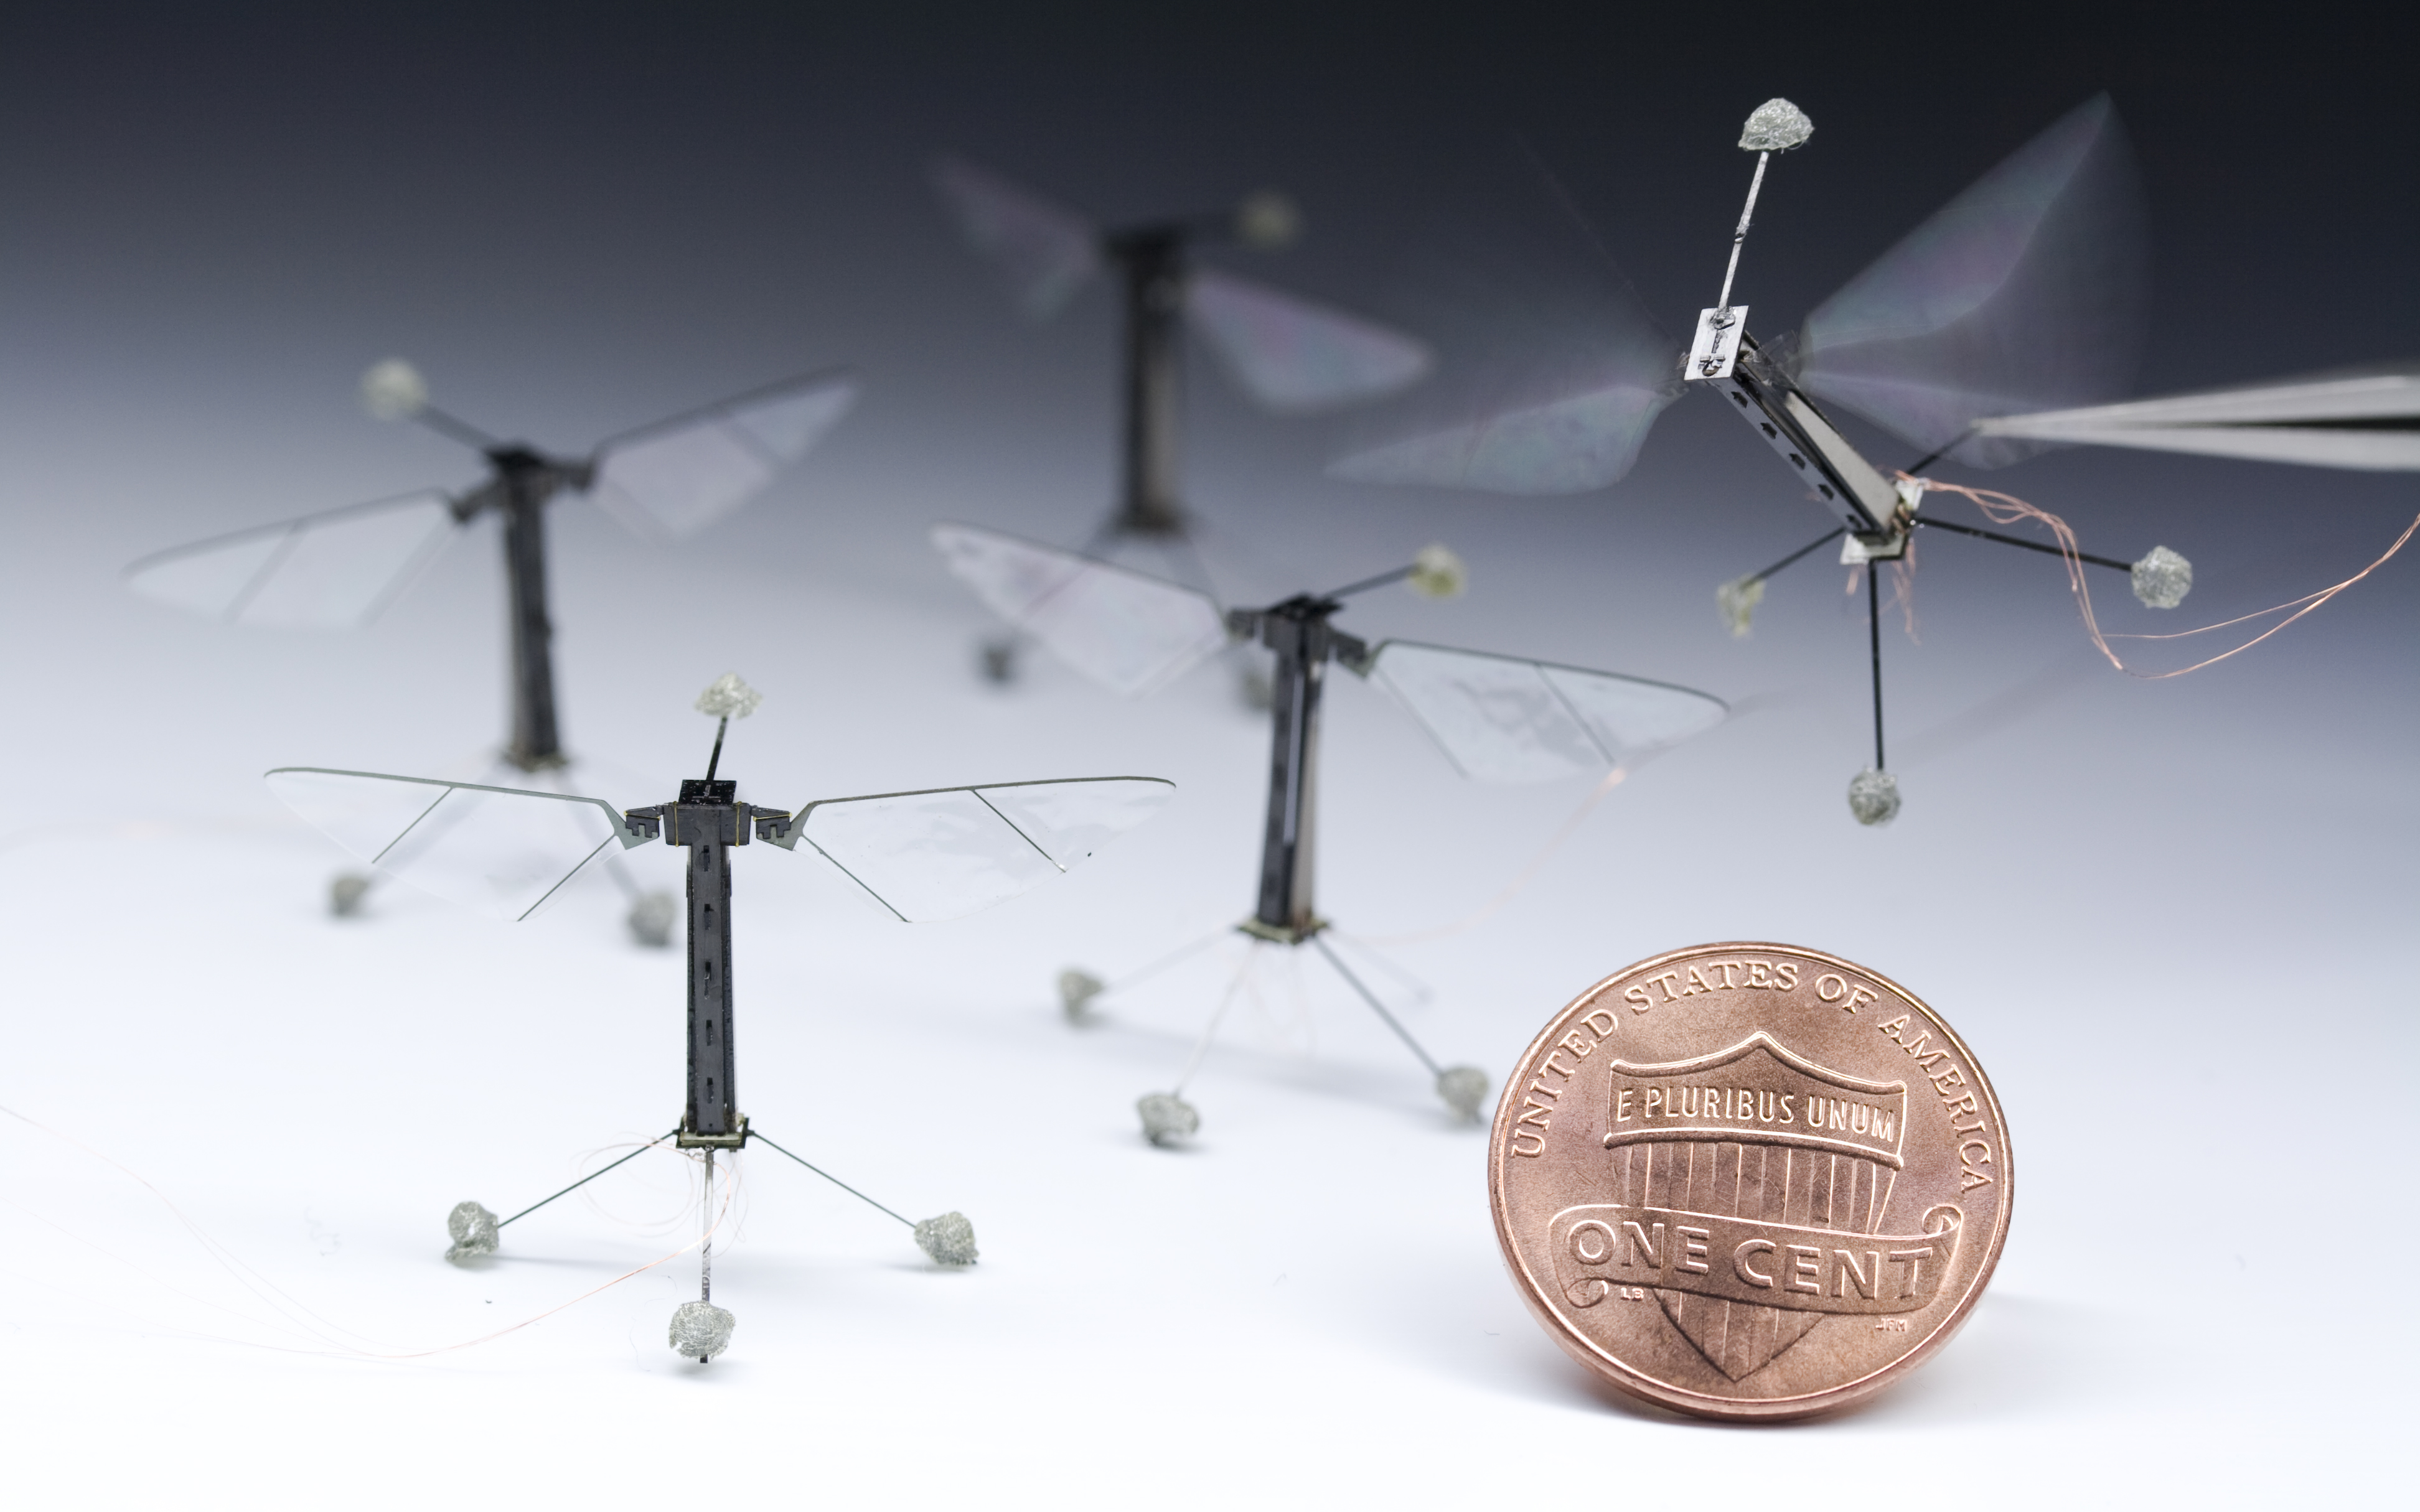 A fleet of Robobees next to a penny, Credit: Kevin Ma and Pakpong Chirarattananon, Harvard University